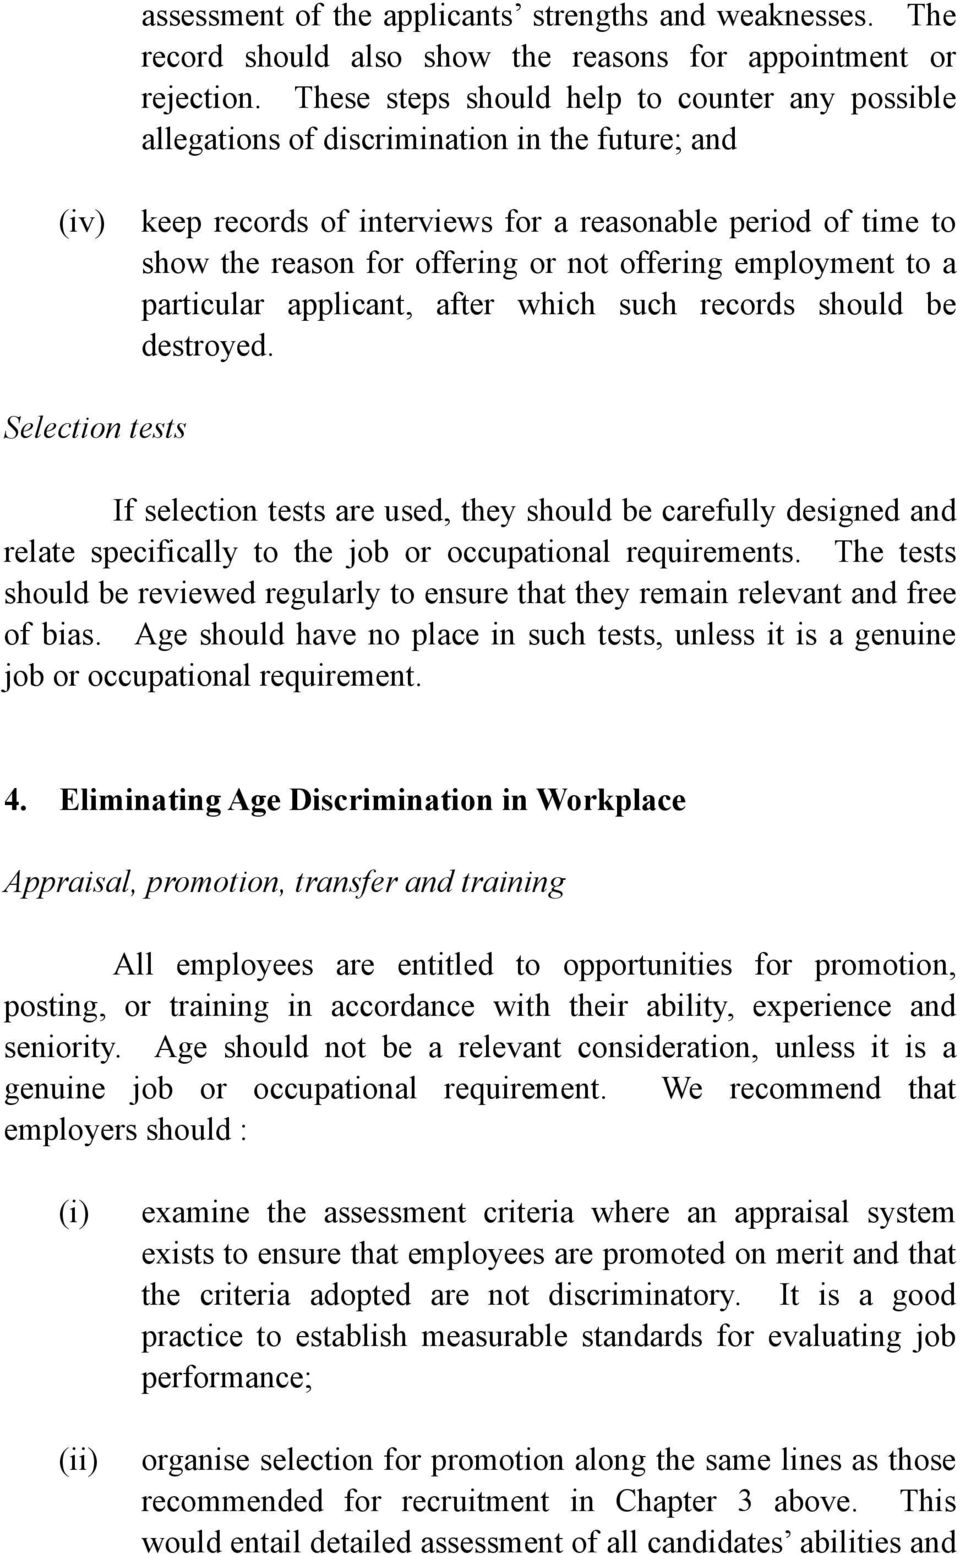 offering employment to a particular applicant, after which such records should be destroyed.